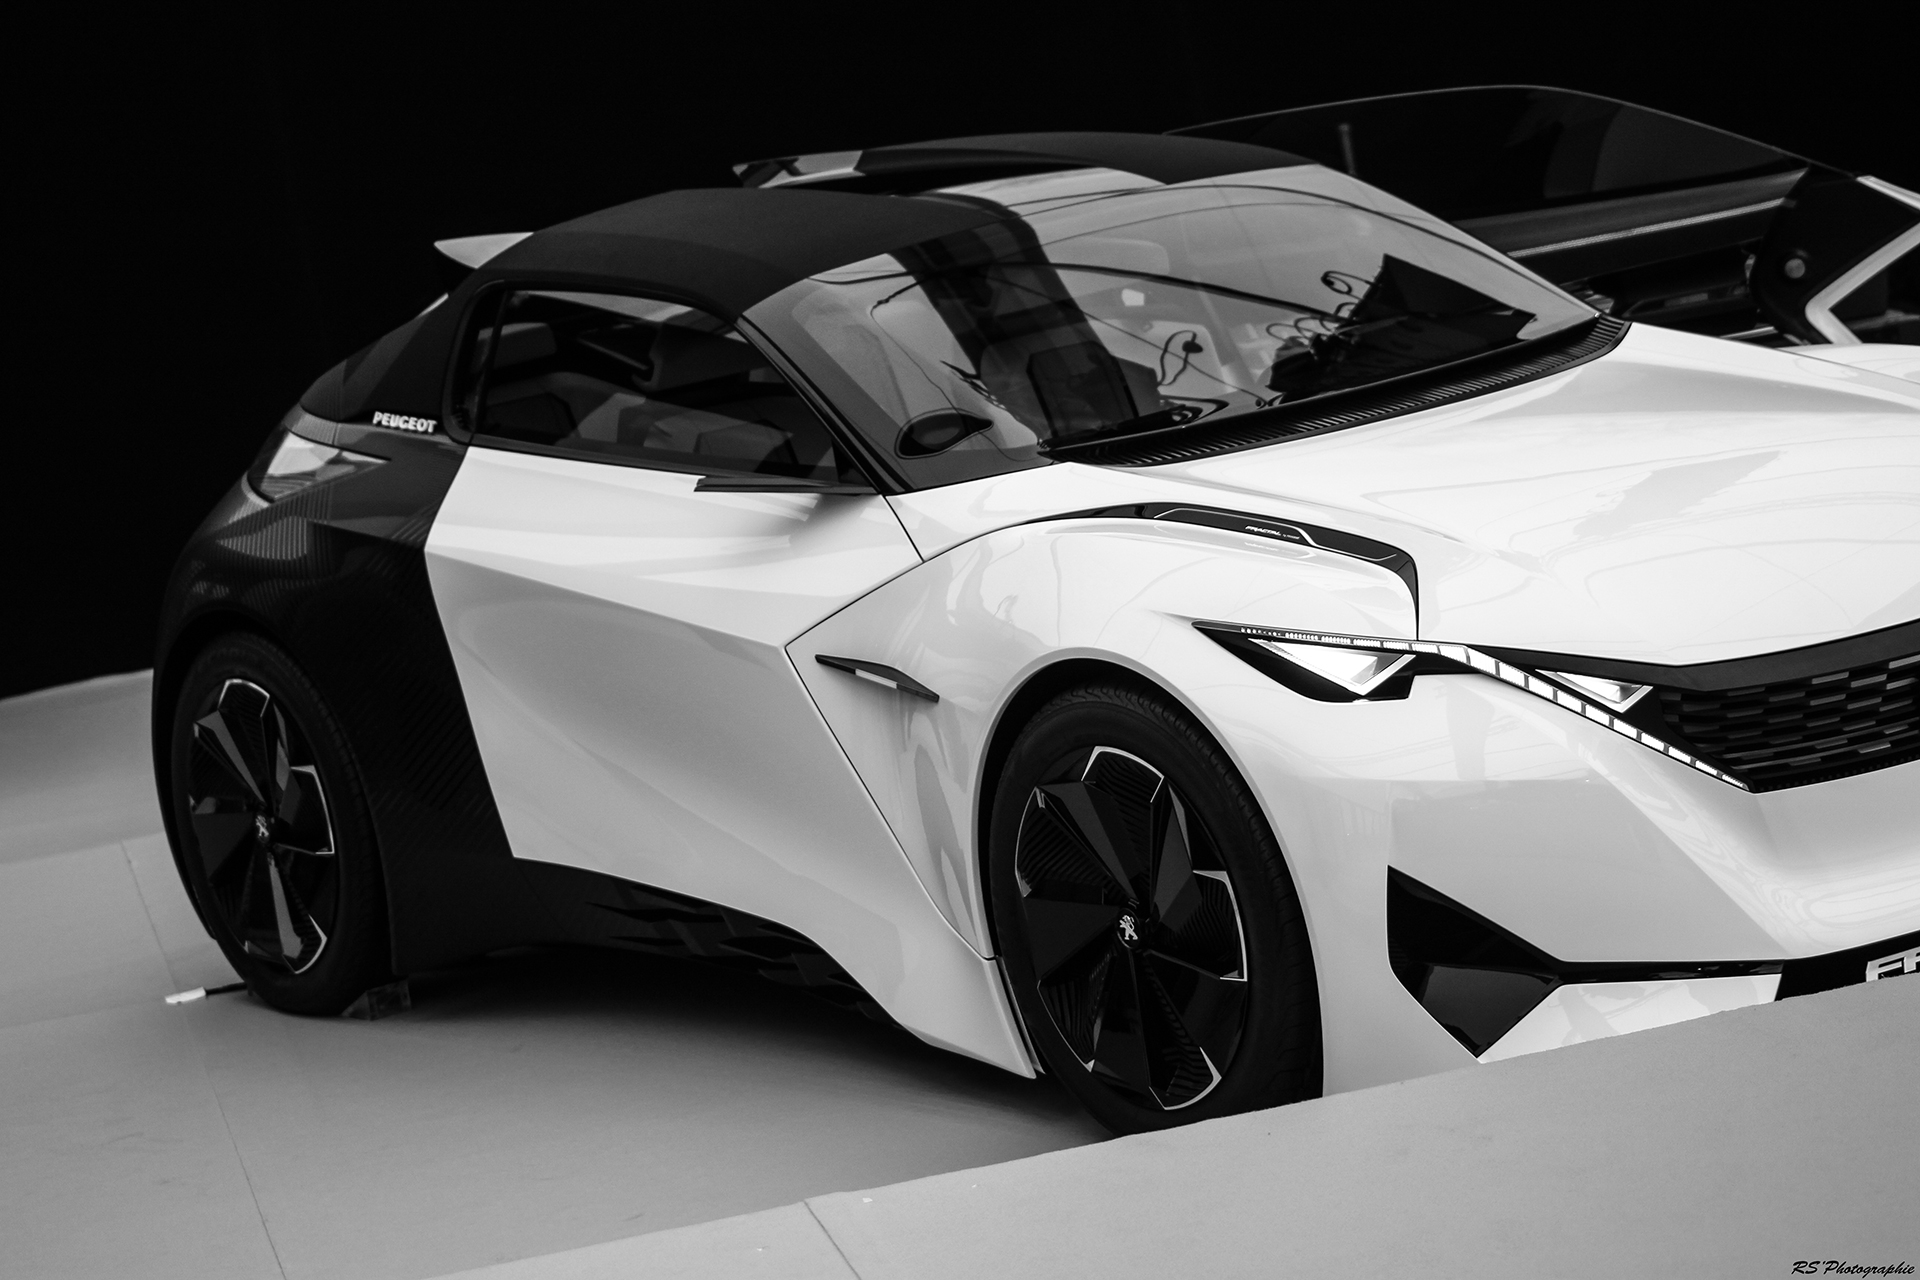 Peugeot Fractal - Exposition Concept cars 2016 - Arnaud Demasier RS Photographie